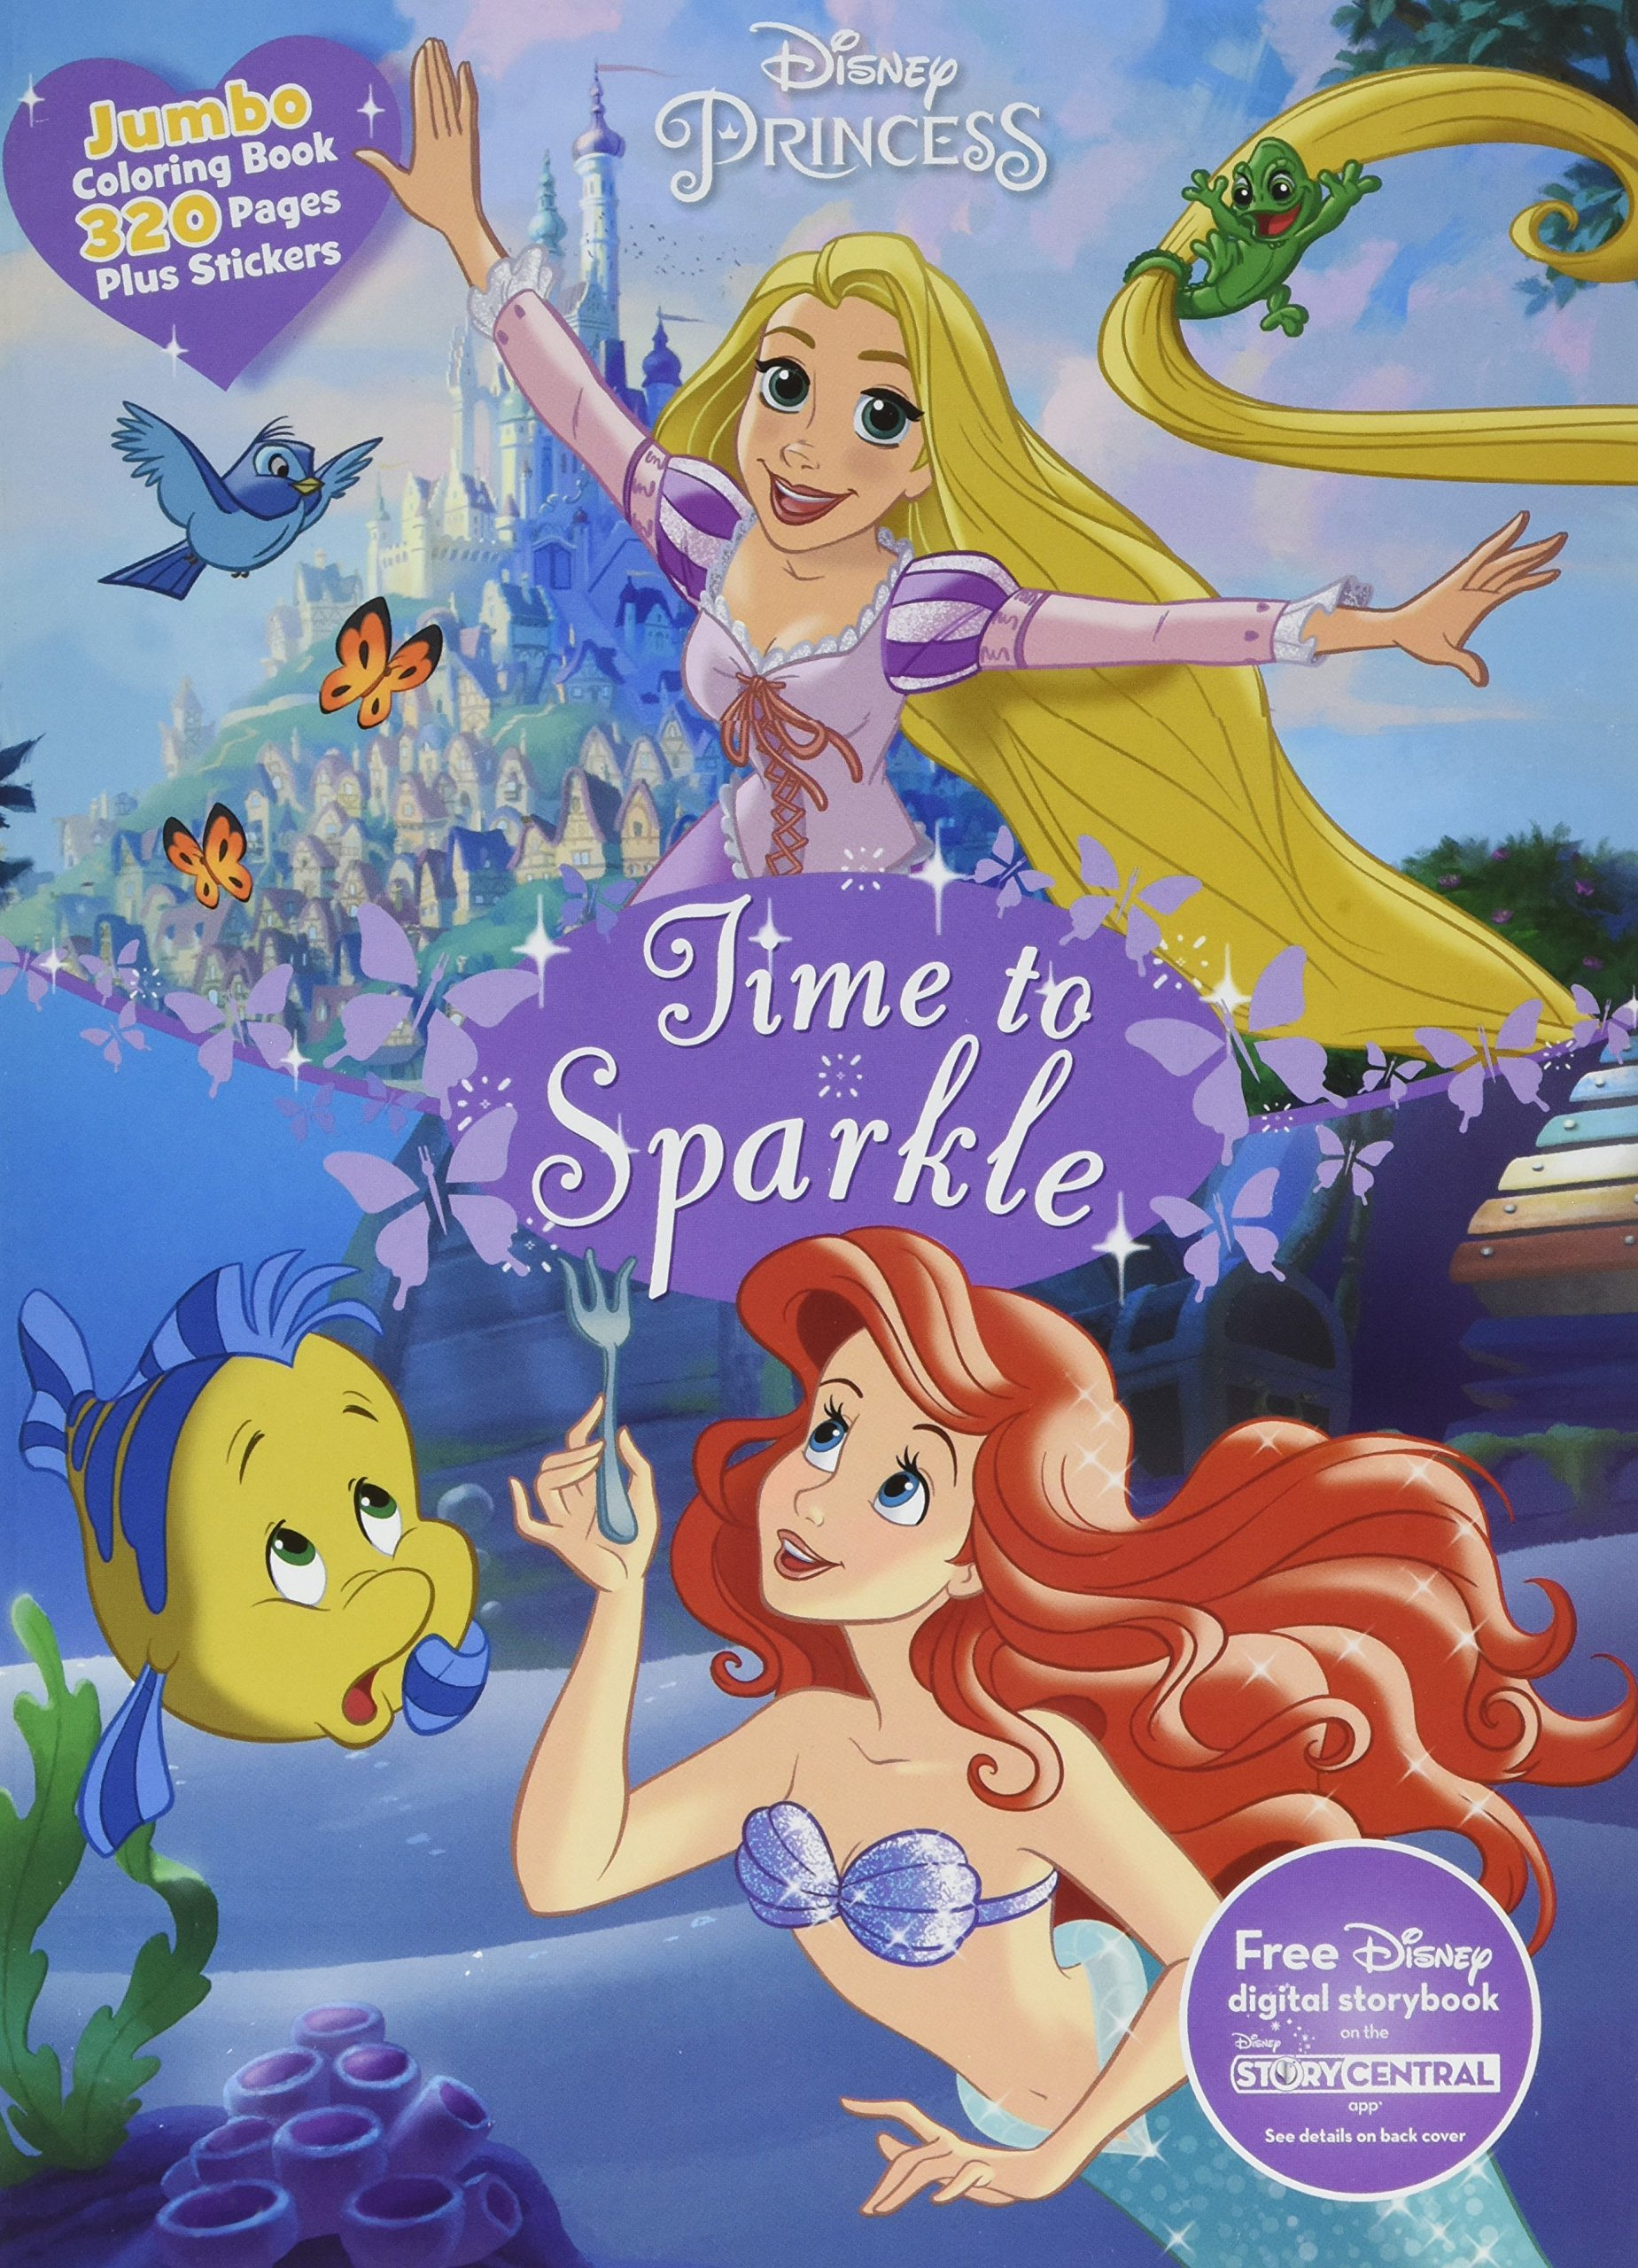 Disney Princess Coloring Book With Stickers